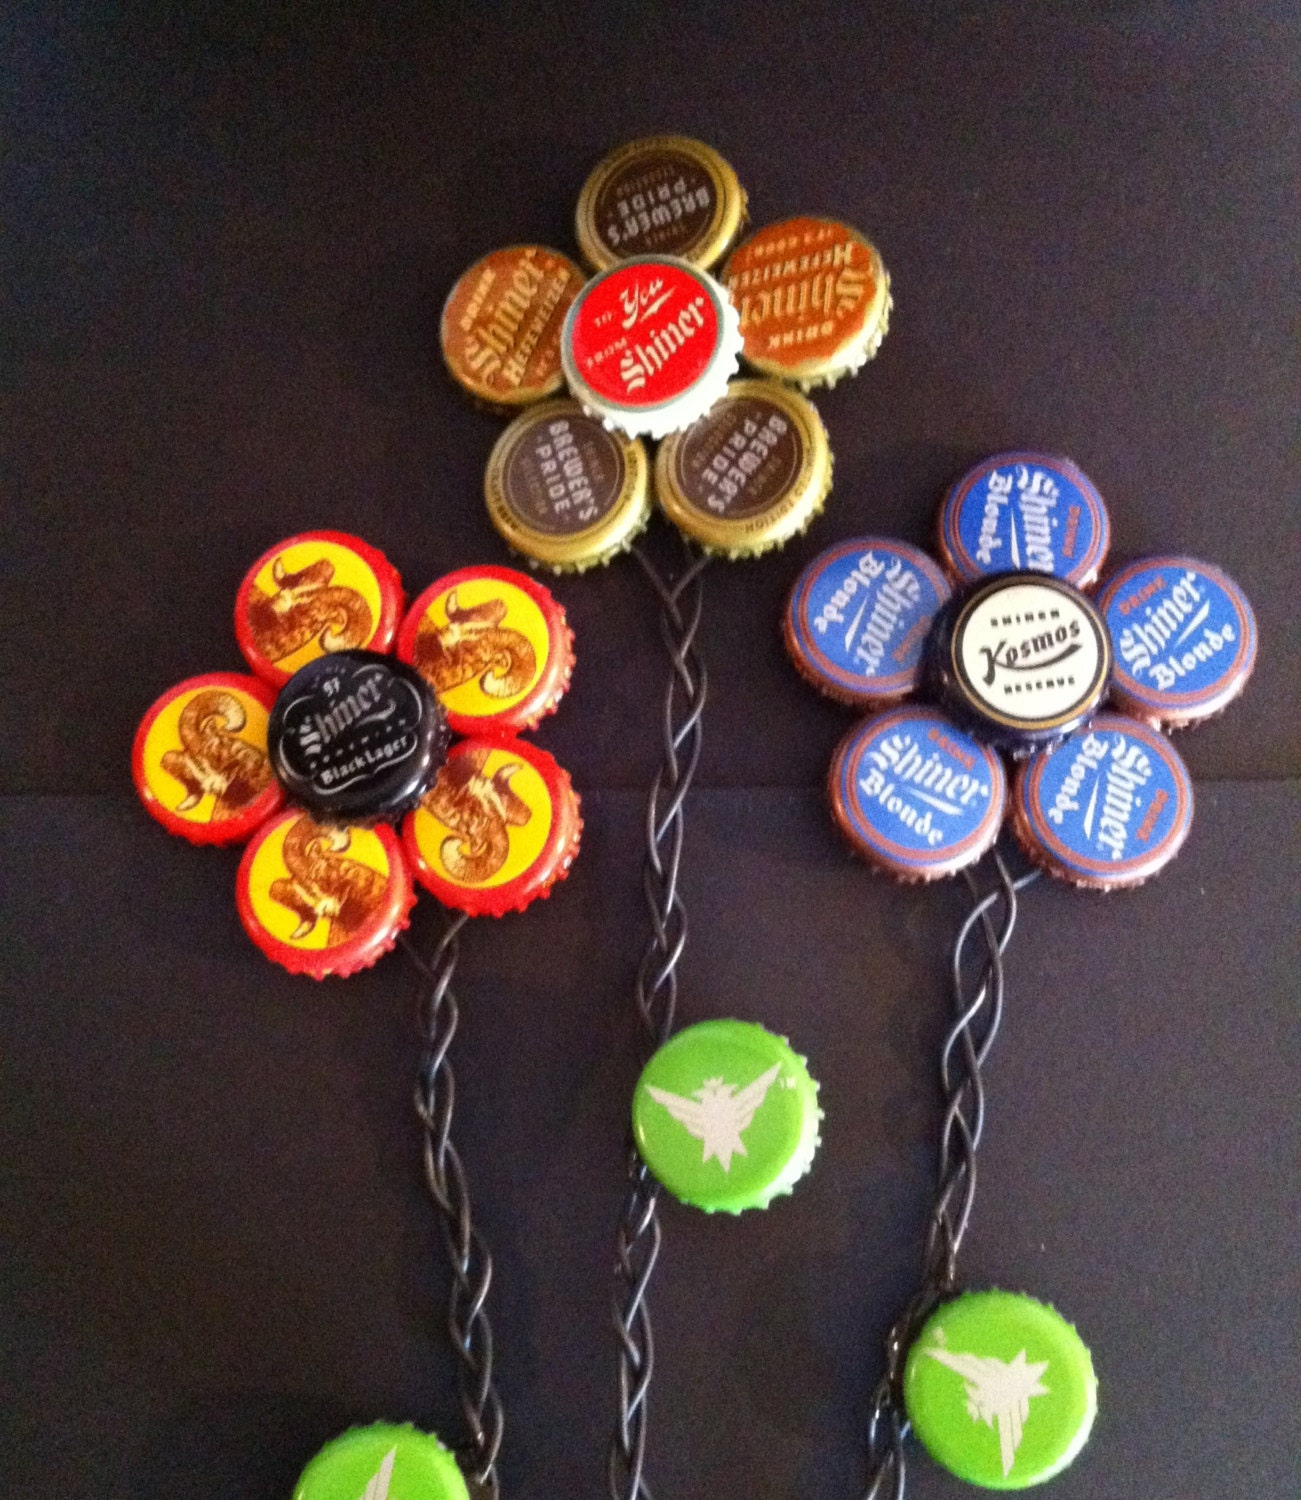 shiner family bottle cap flowers set of 3